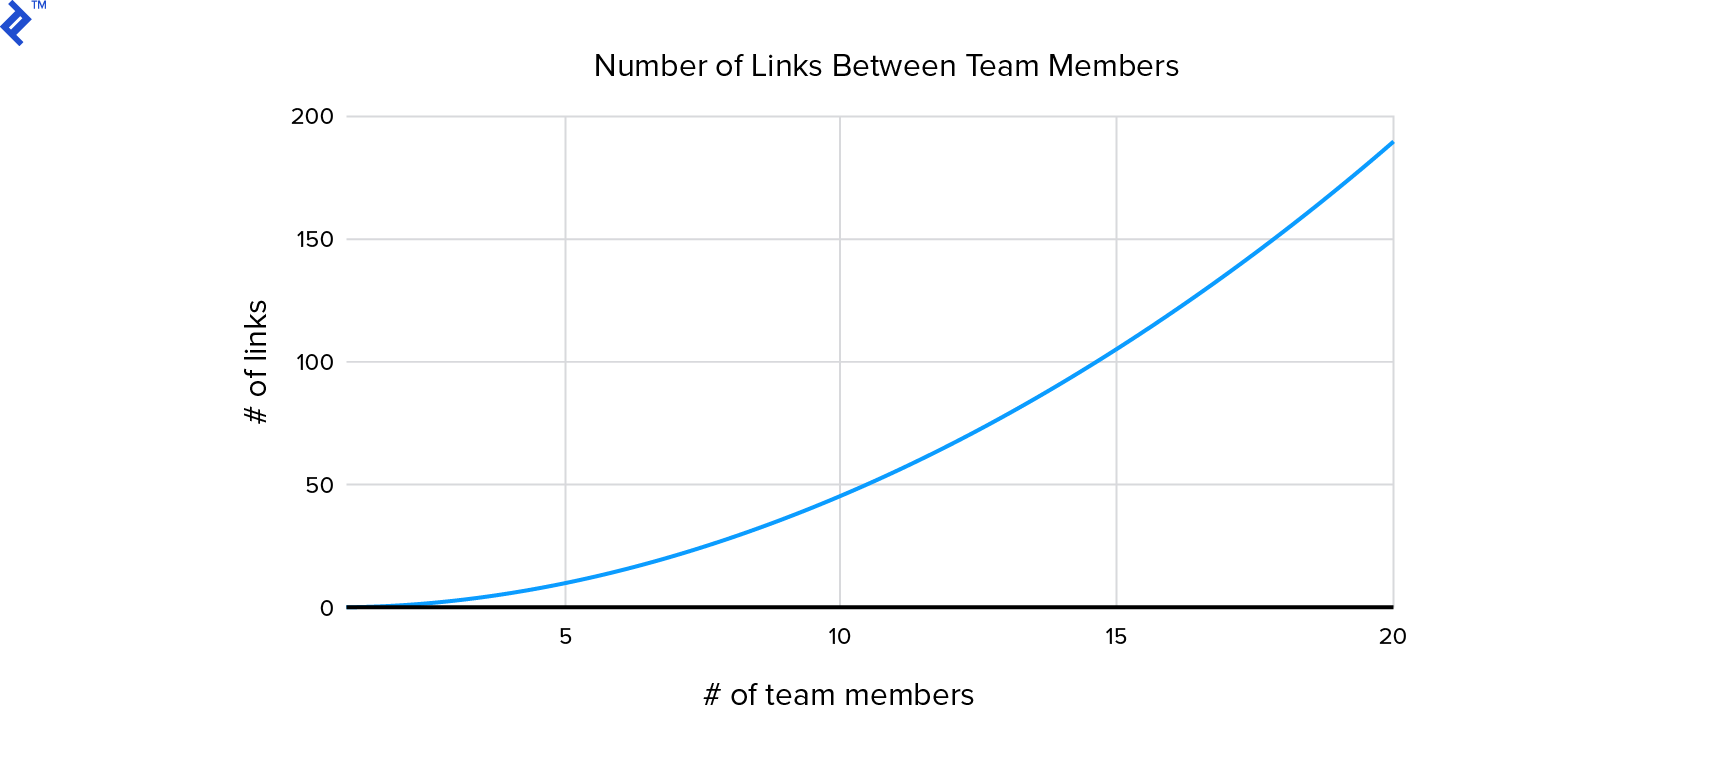 Number of links between team members